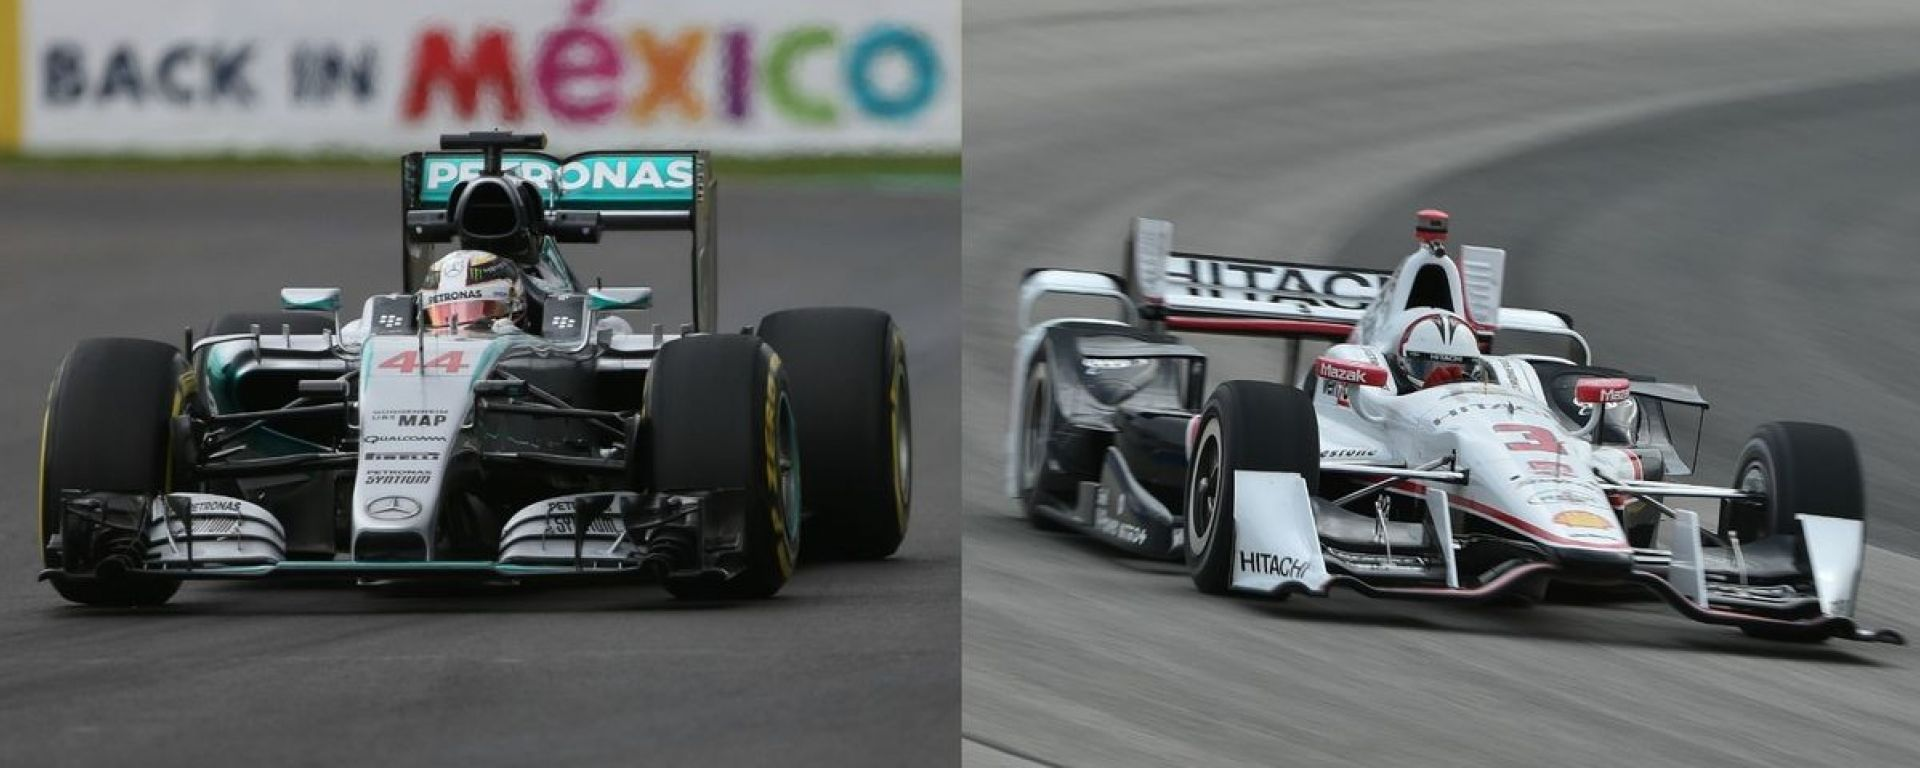 Indy Car VS F1